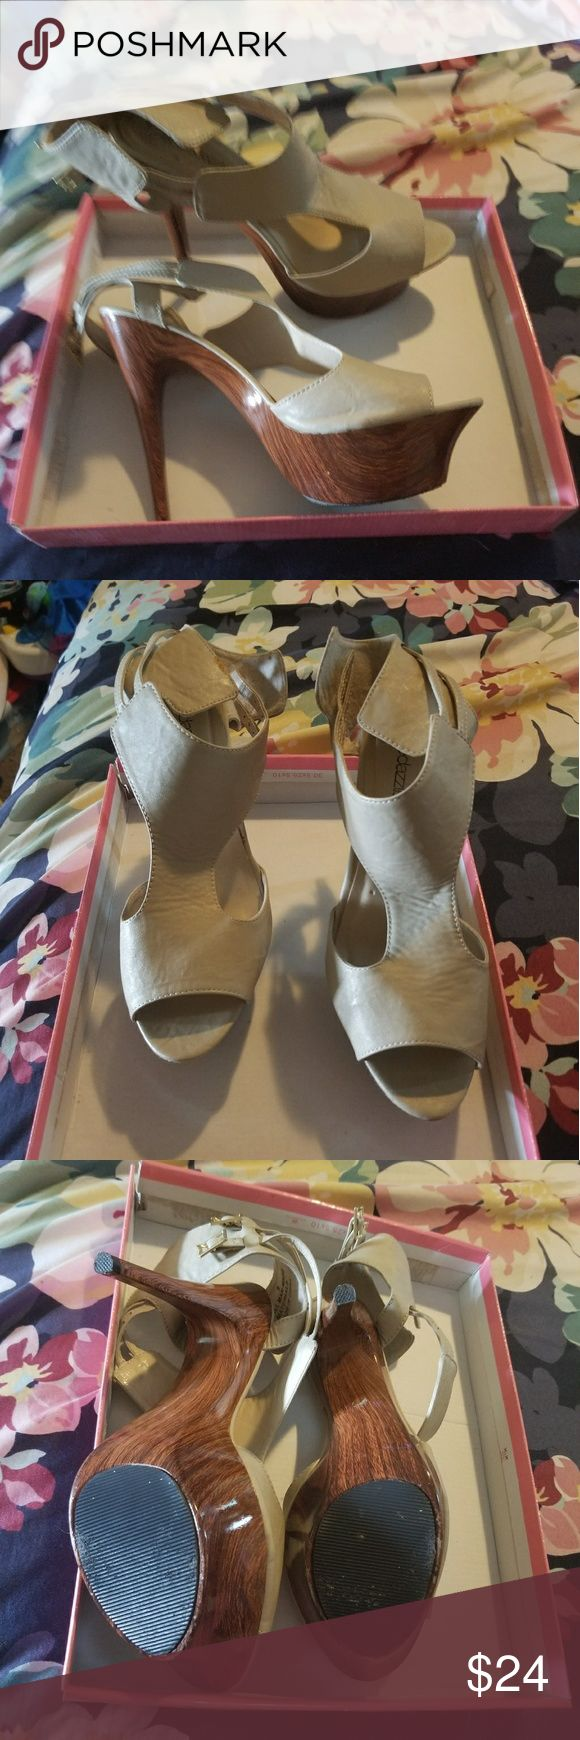 Shoe Dazzle Size 9 shoes Great condition small flaw in picture Shoe Dazzle Shoes Heels